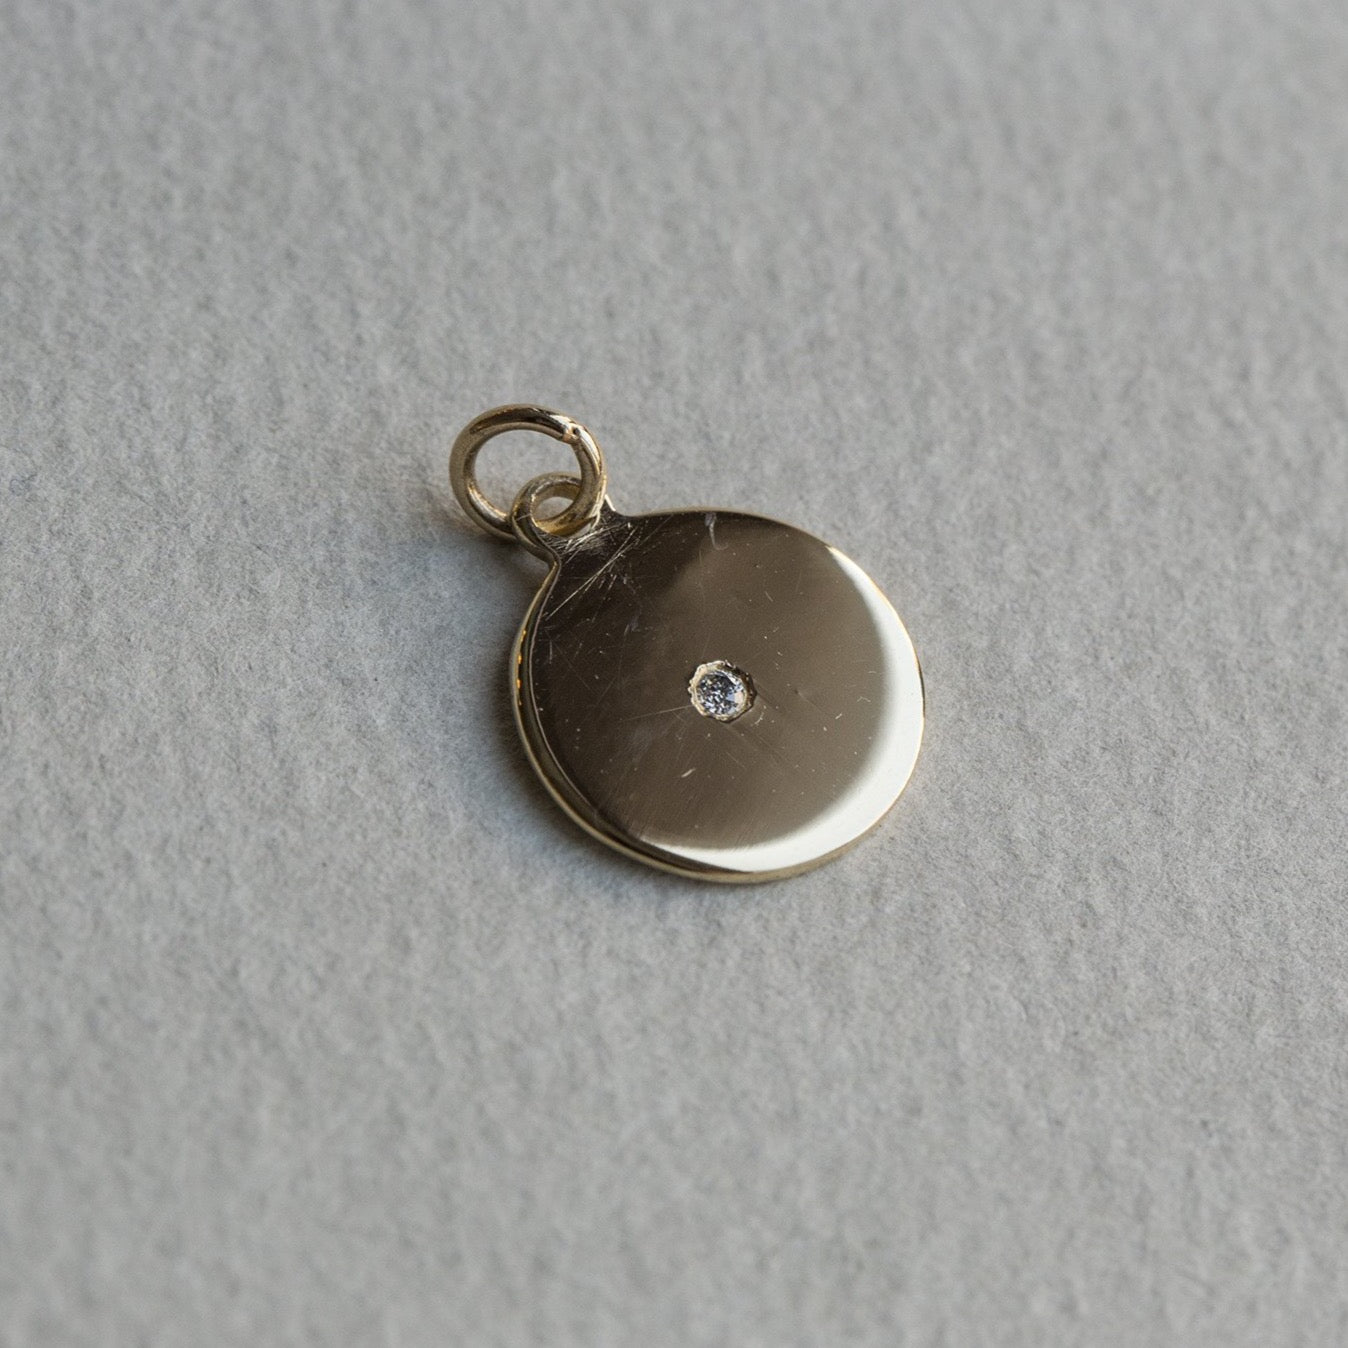 the disc is handmade and it matches our inexpensive 9 carat gold chain also available on feltlondon.com